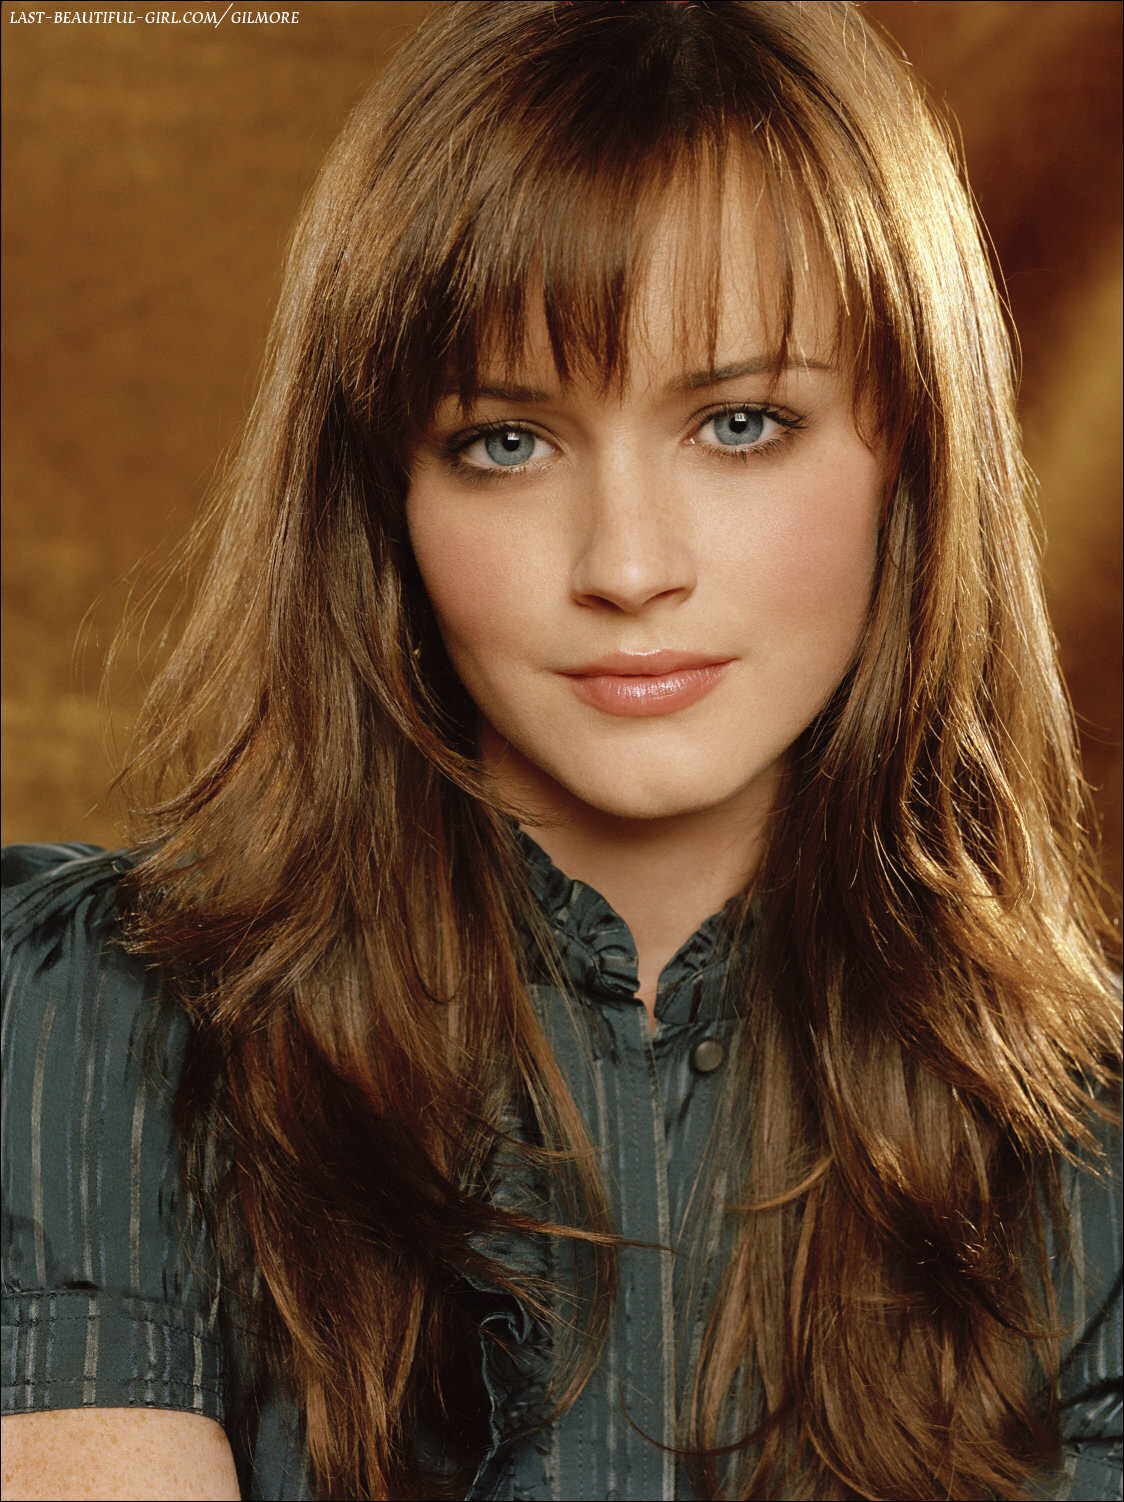 Alexis Bledel Actress Profile And Photos 2012 Hollywood